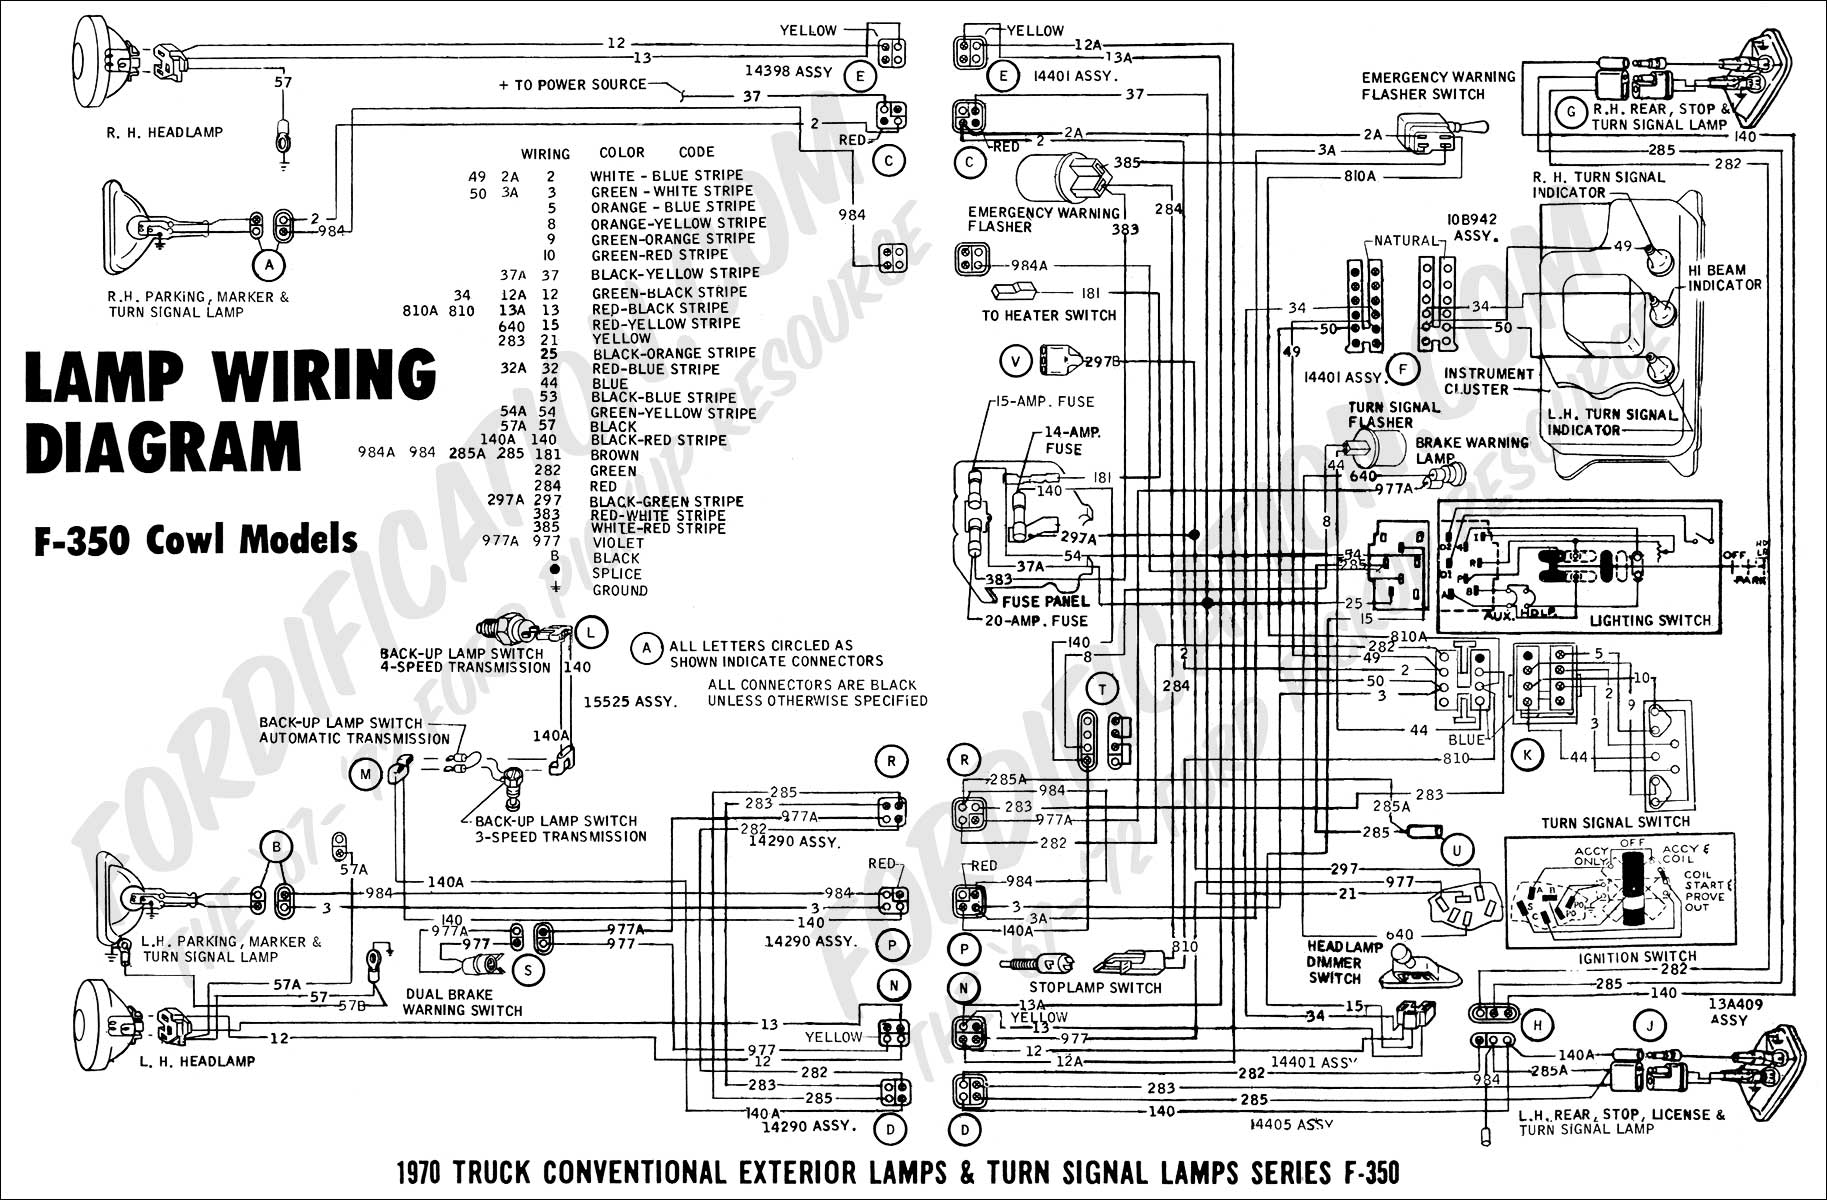 Lamp Wiring Schematic 2002 Ford Ranger Worksheet And Diagram Radio Wire 02 F350 Will Be A Thing U2022 Rh Exploreandmore Co Uk 2004